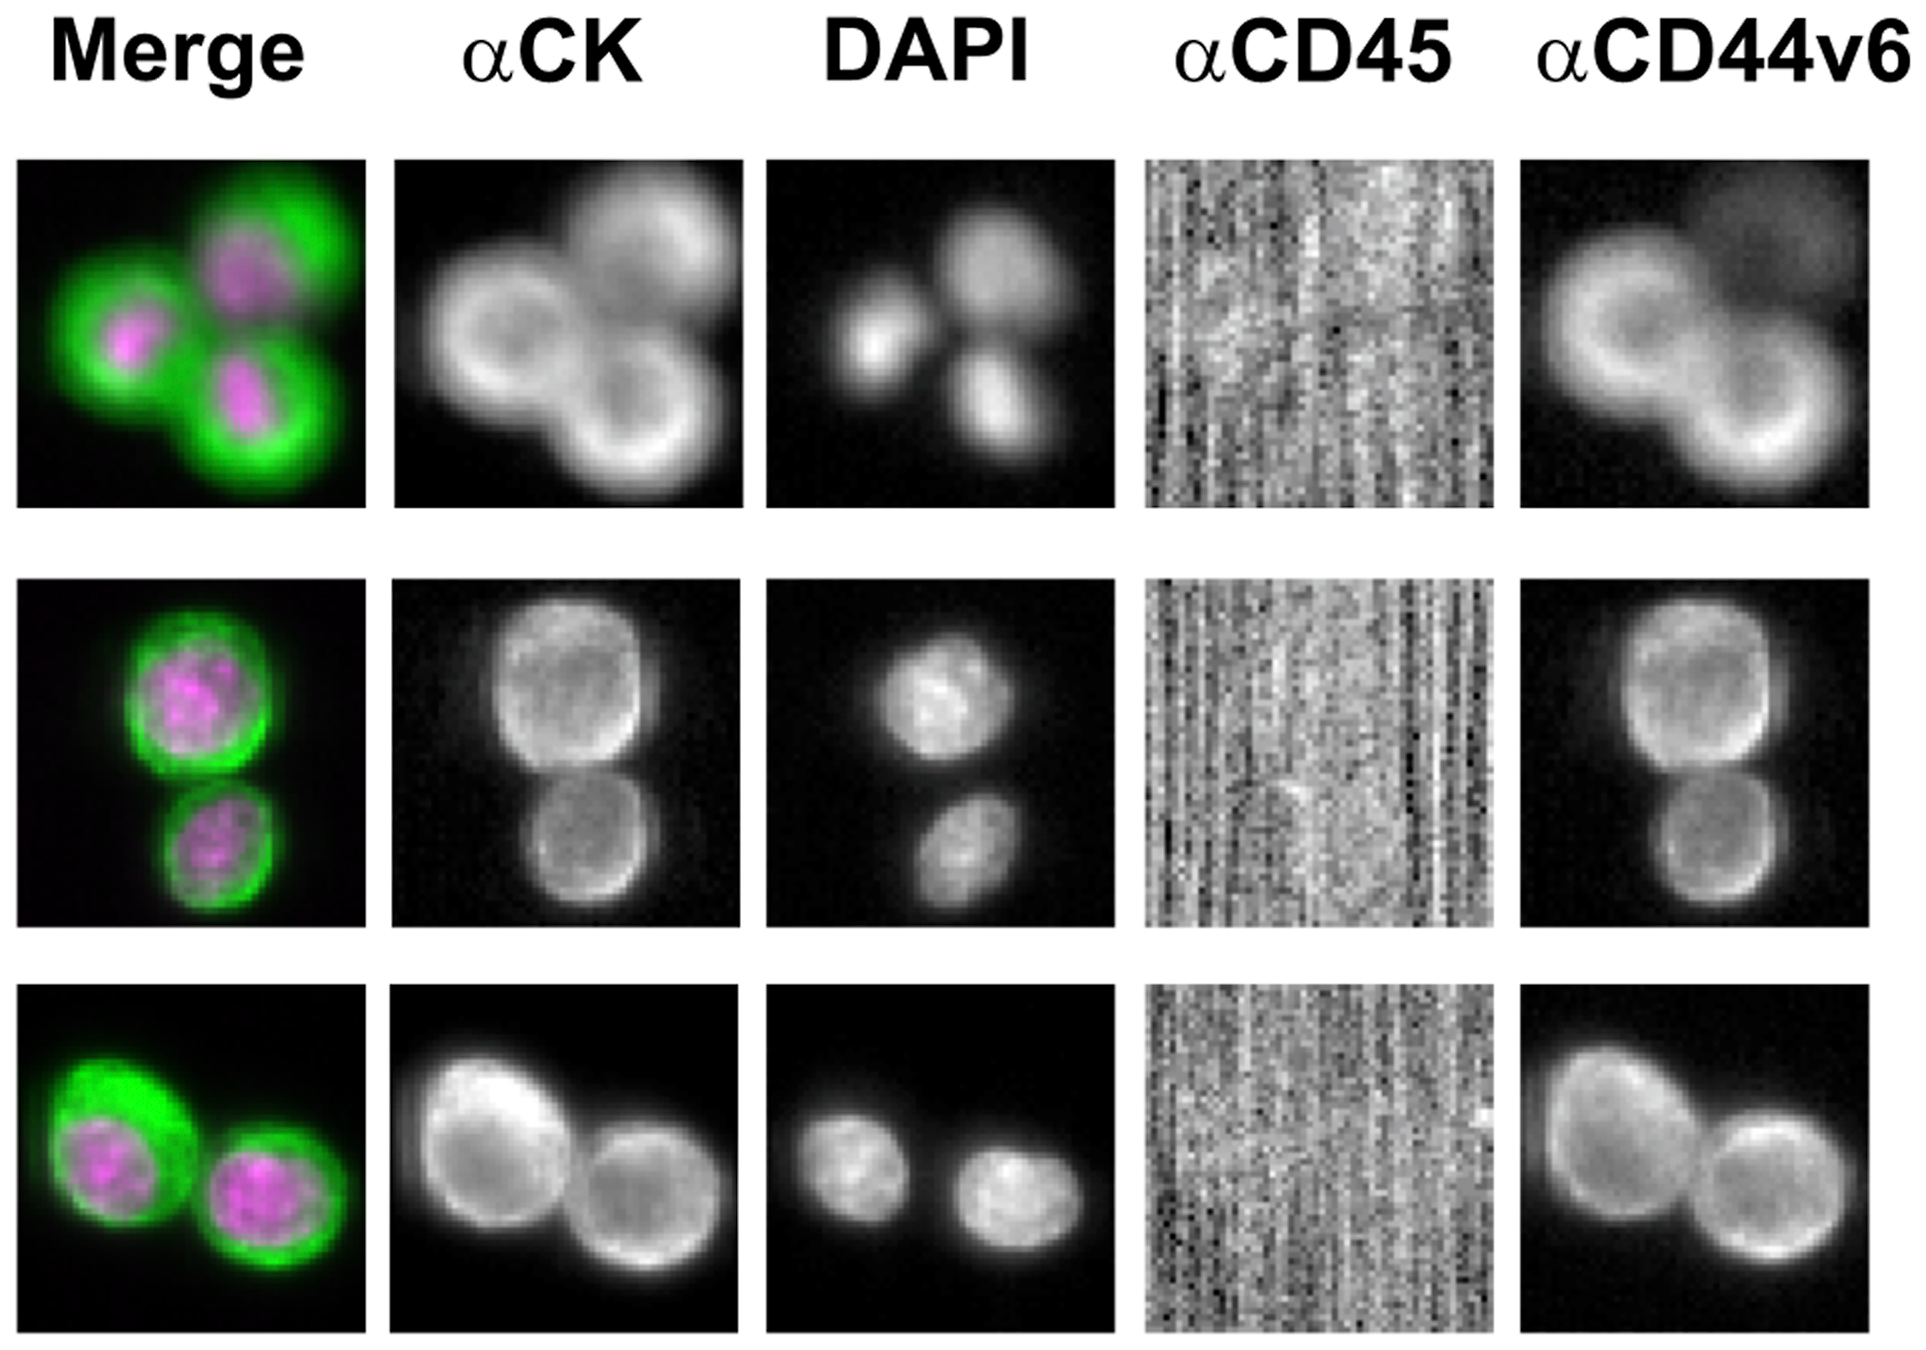 Illustrative images of CD44v6 immunostaining of MDA-MB-231 cell line through CellSearch® system (antibody concentration: 0.02 μg/mL; Exposure Time: 0.4 sec).